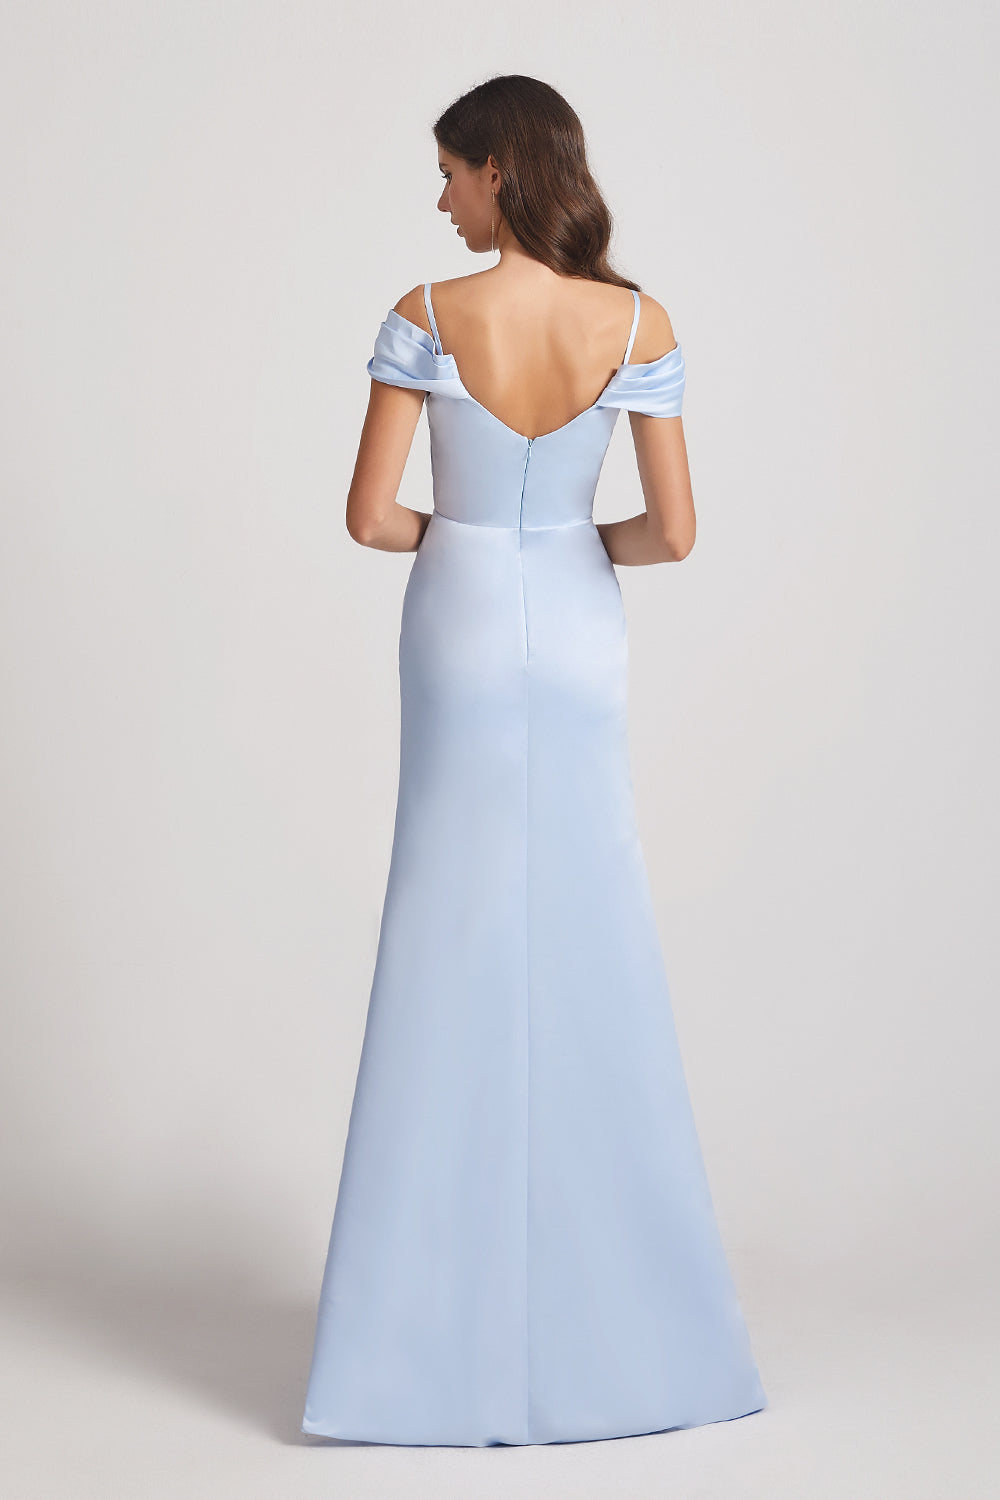 backless spaghetti straps dress